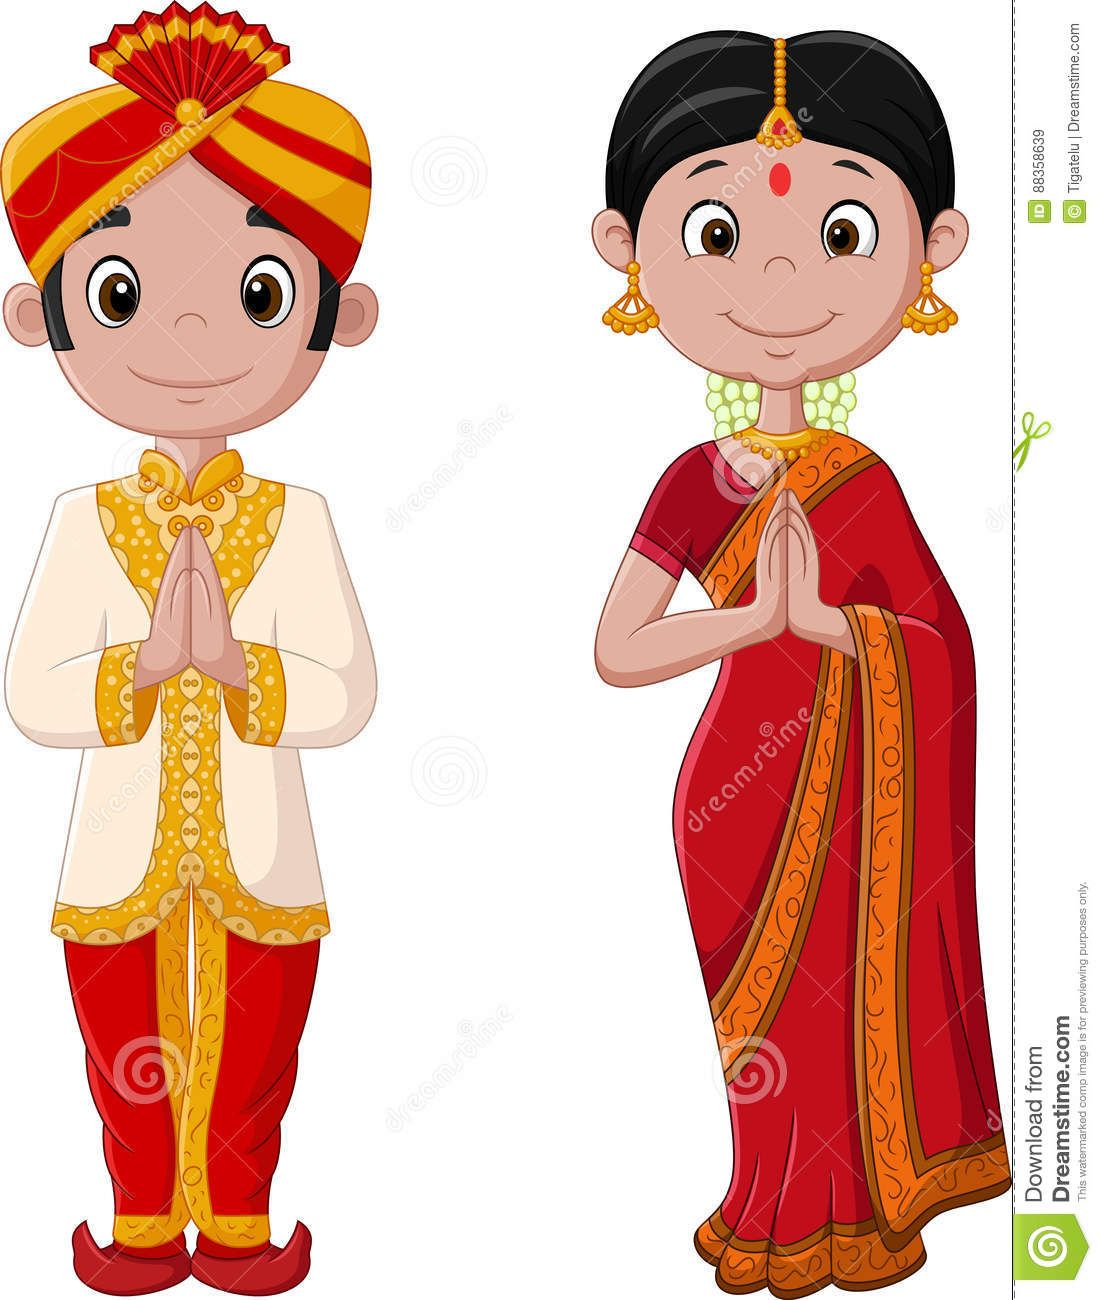 24+ Indian Wedding Cartoon  JPG